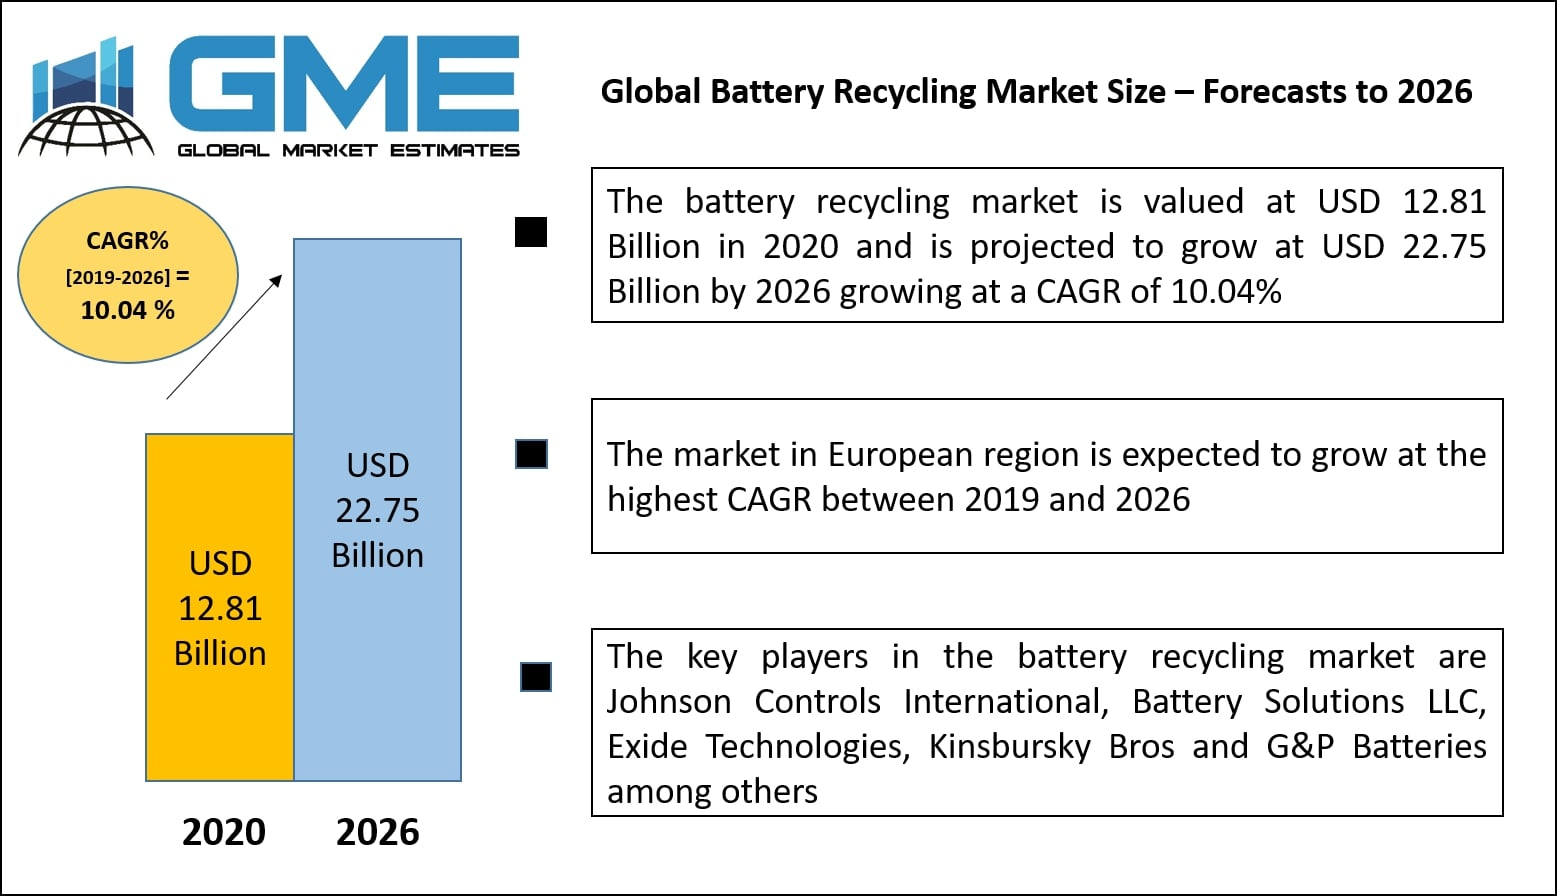 Global Battery Recycling Market Size